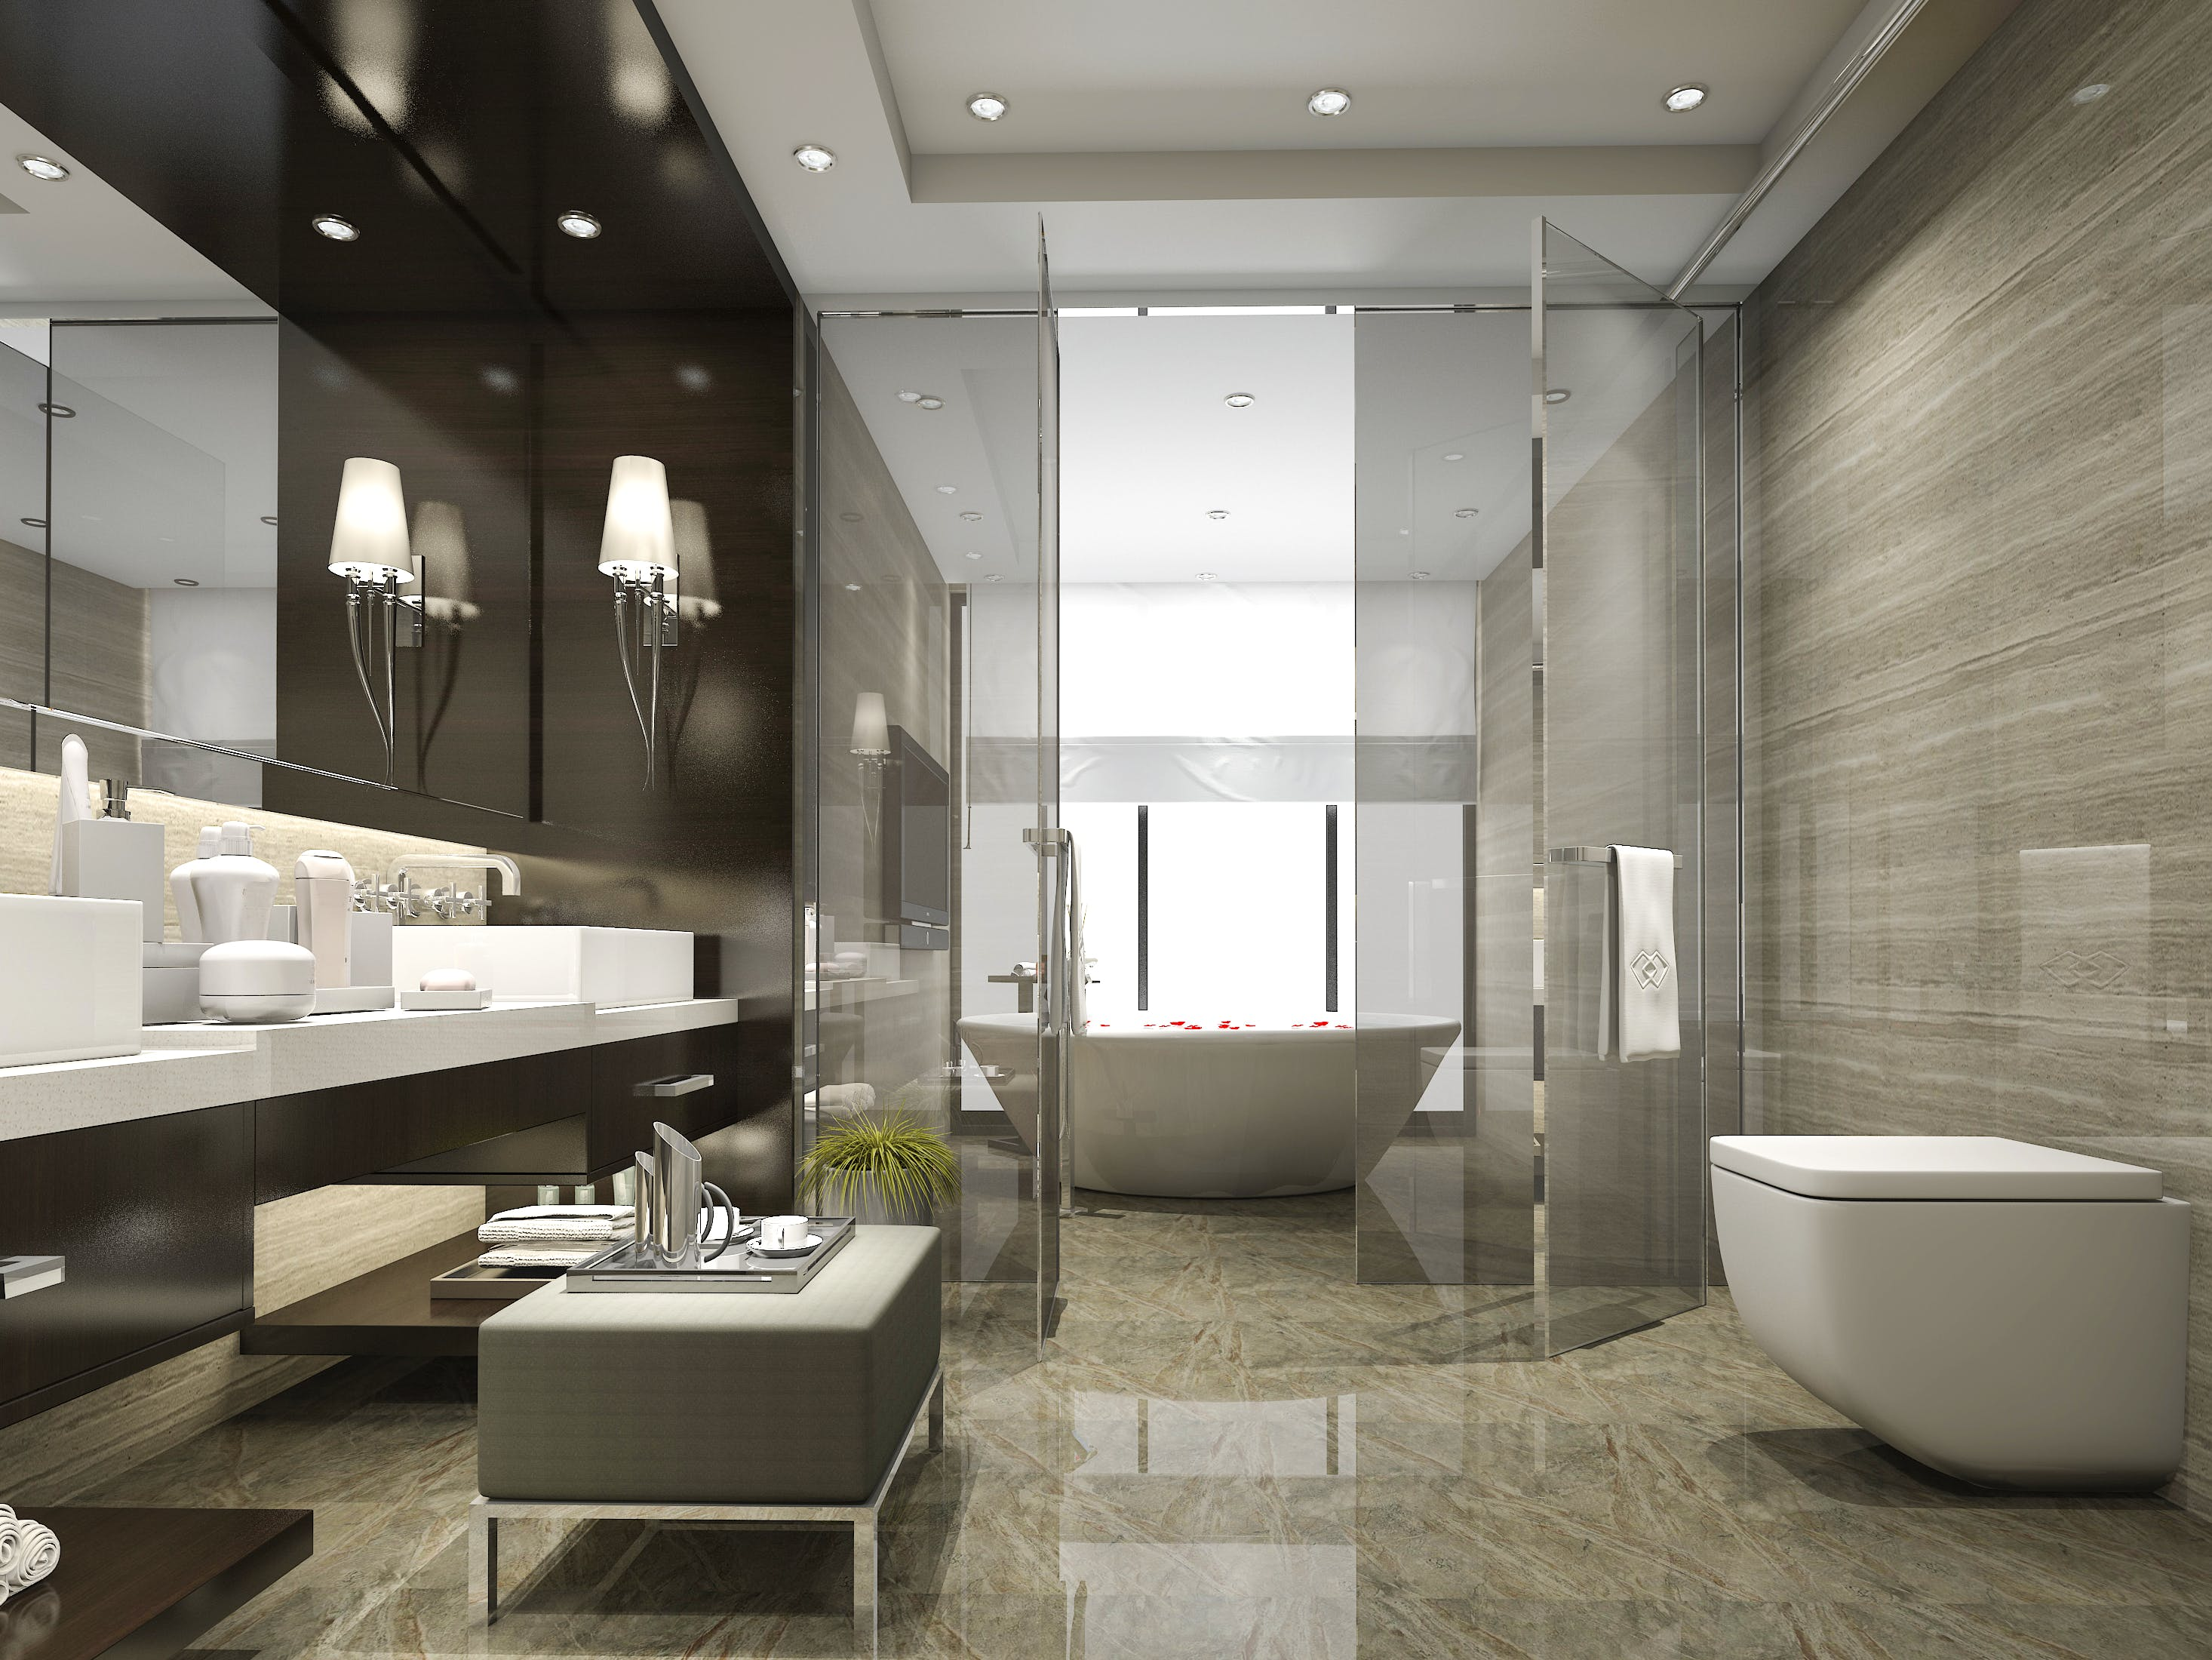 Modern bathroom with new glass shower enclosure.